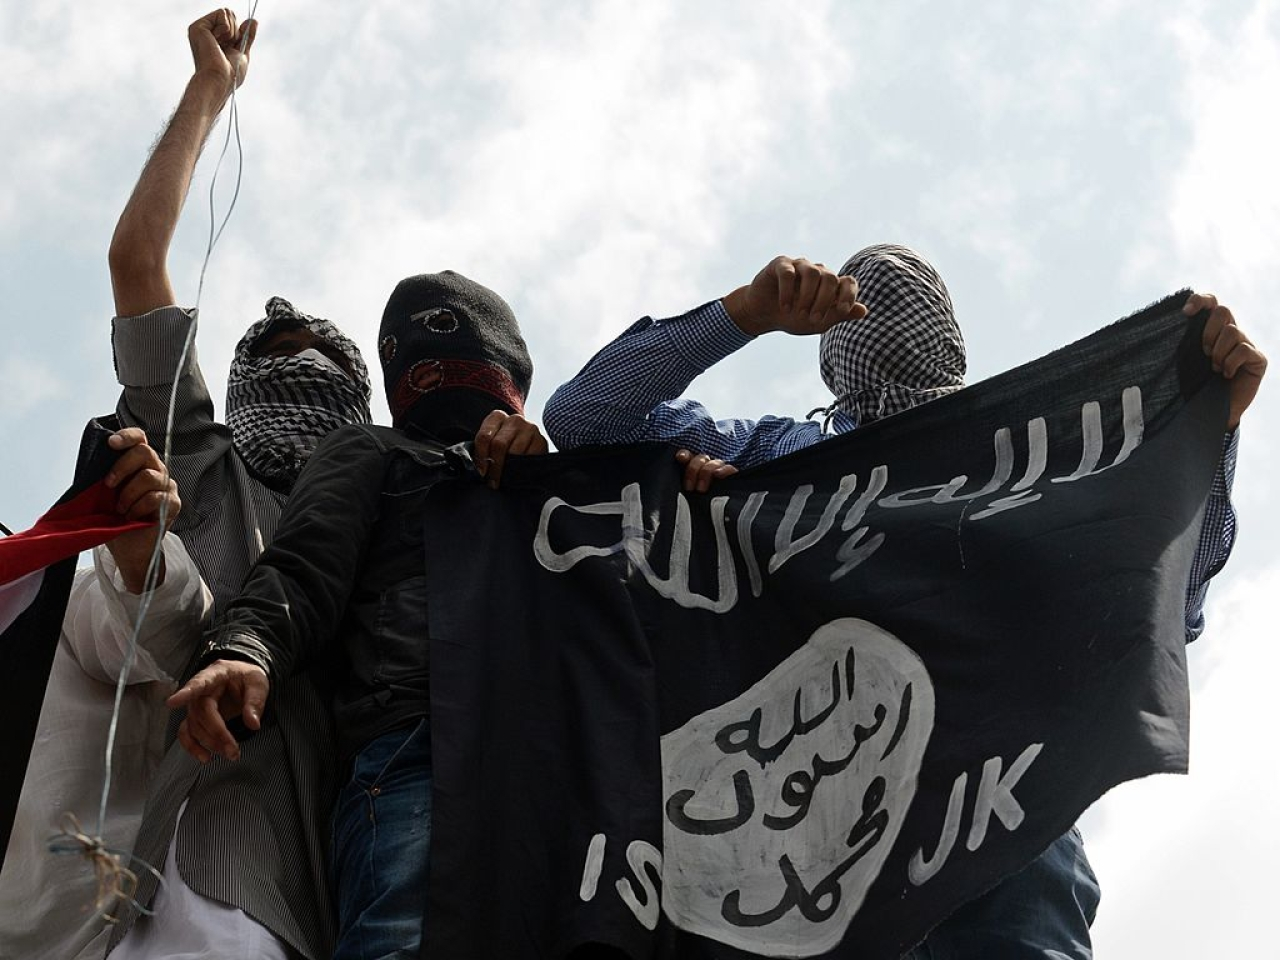 ISIS flags being waved in Kashmir in 2014 (TAUSEEF MUSTAFA/AFP/Getty Images)